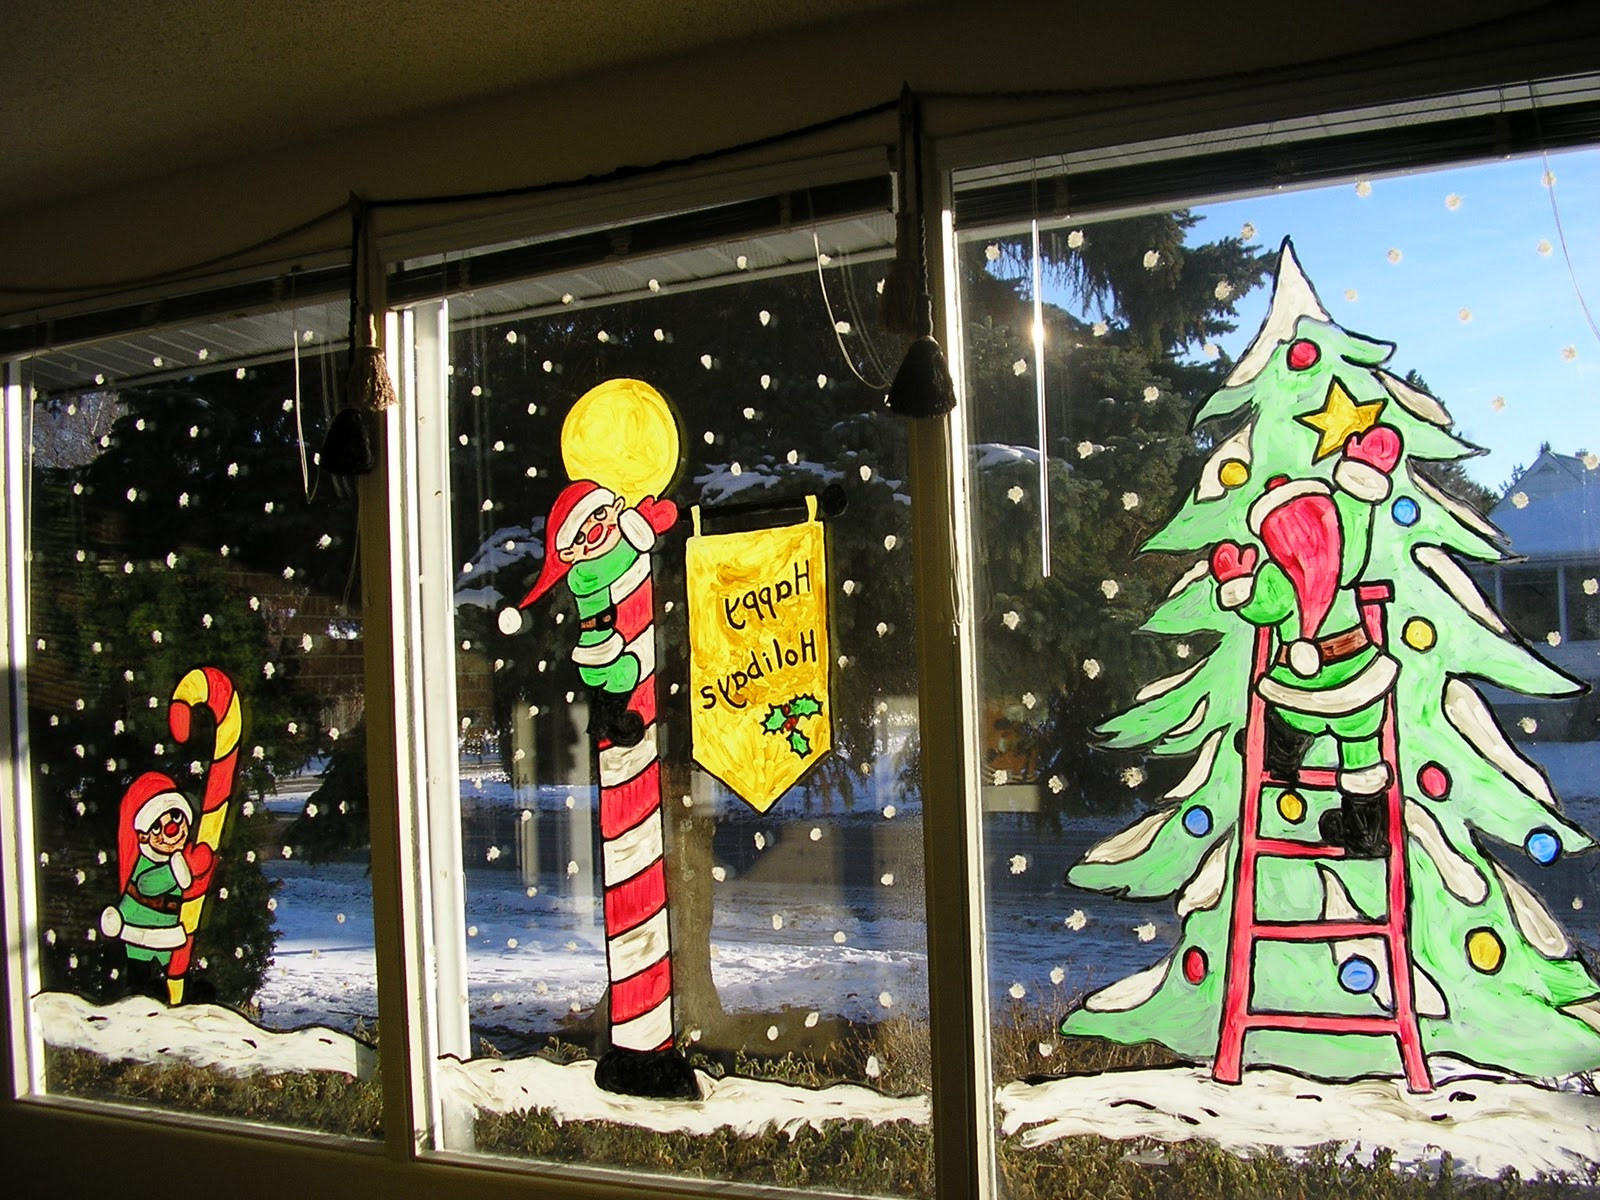 Christmas 2010 Window Art & Inspireworks Art: Christmas 2010 Window Art